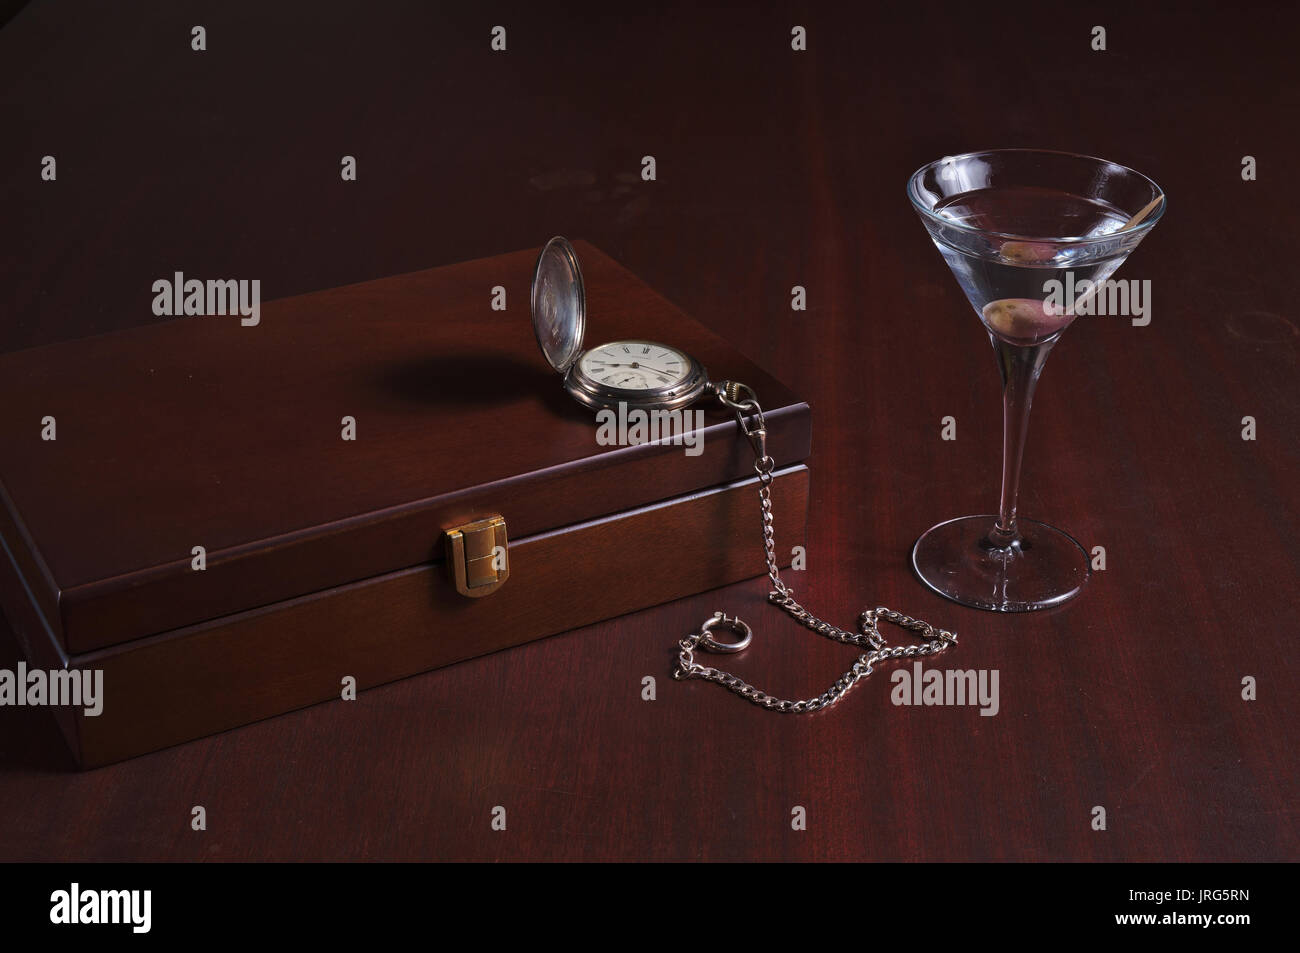 Classy gentlemen related items. Themed vintage and lifestyles photograph - Stock Image